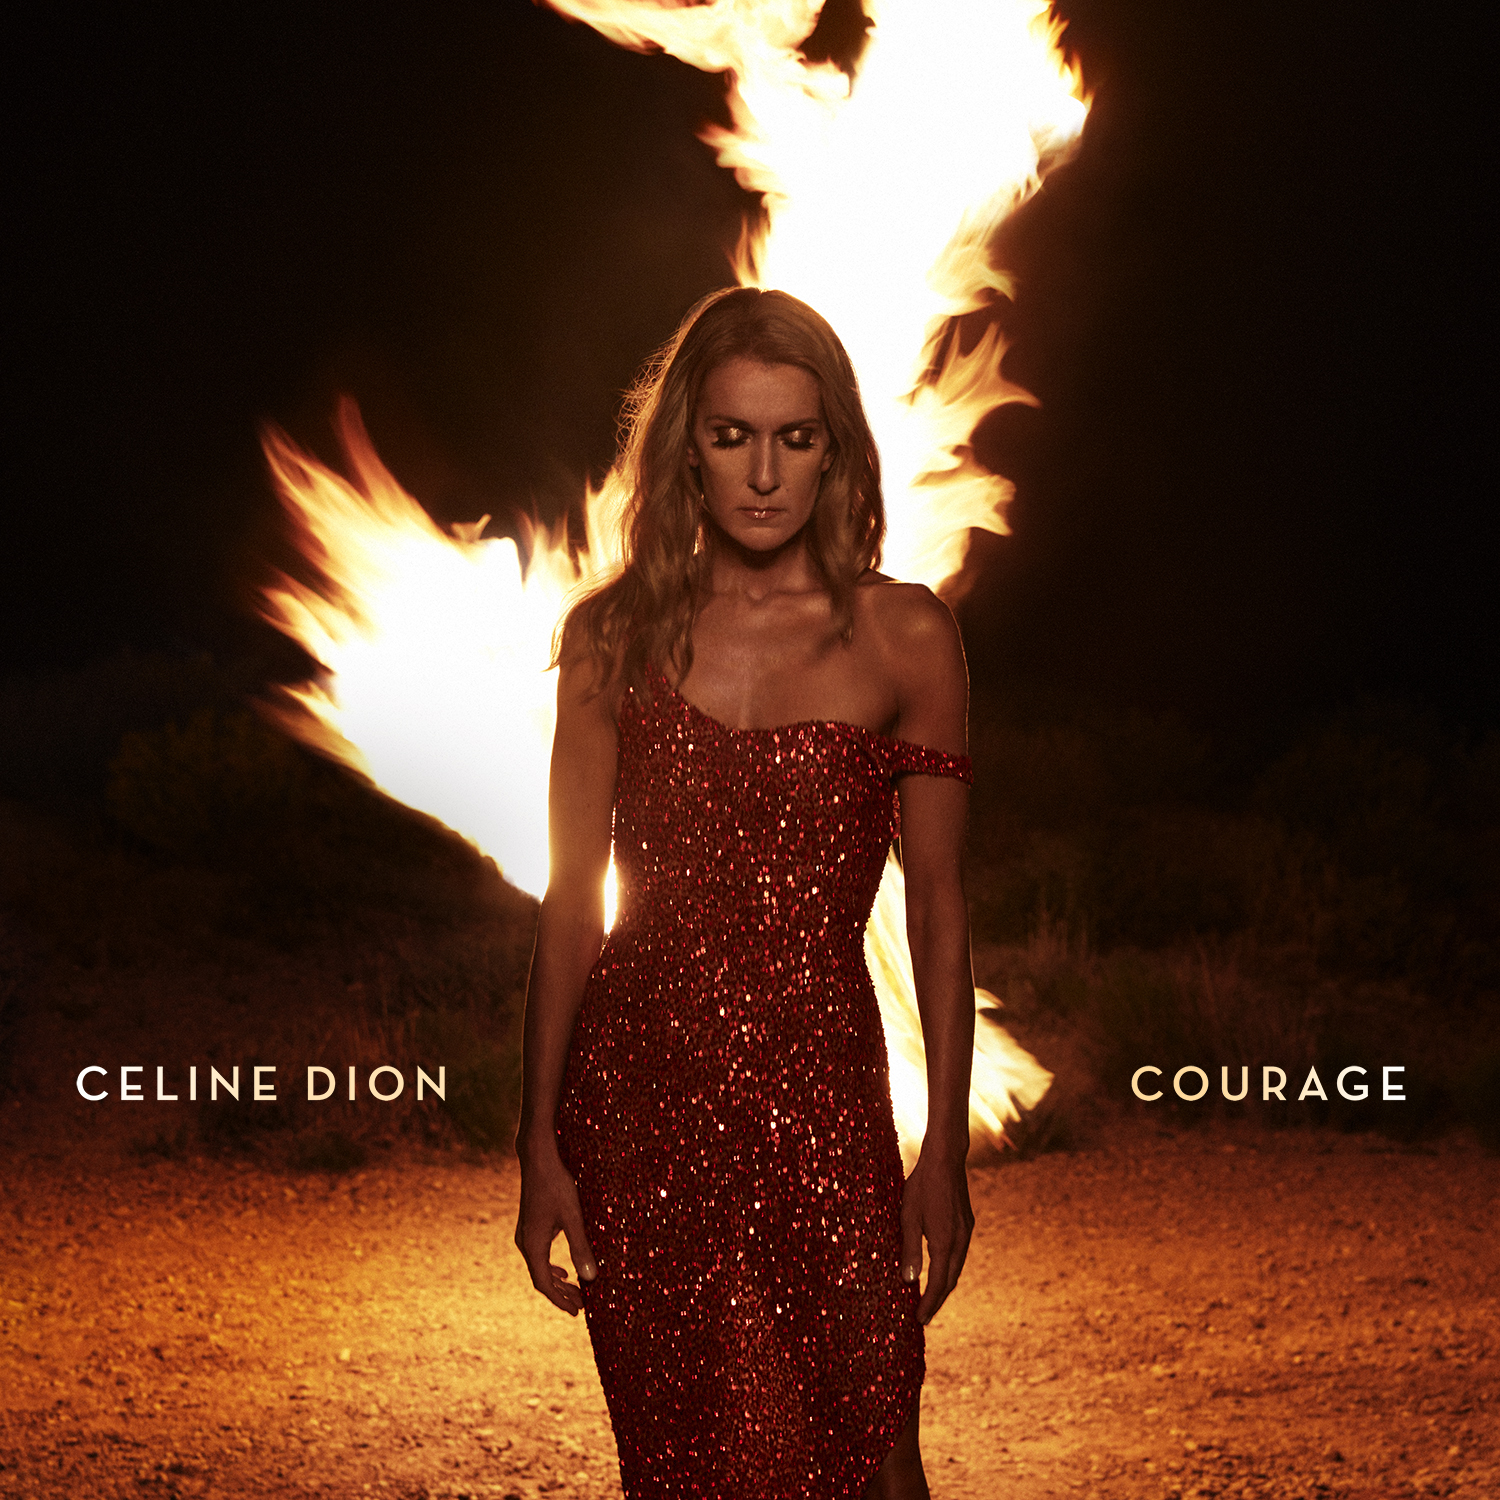 Courage [Deluxe CD]